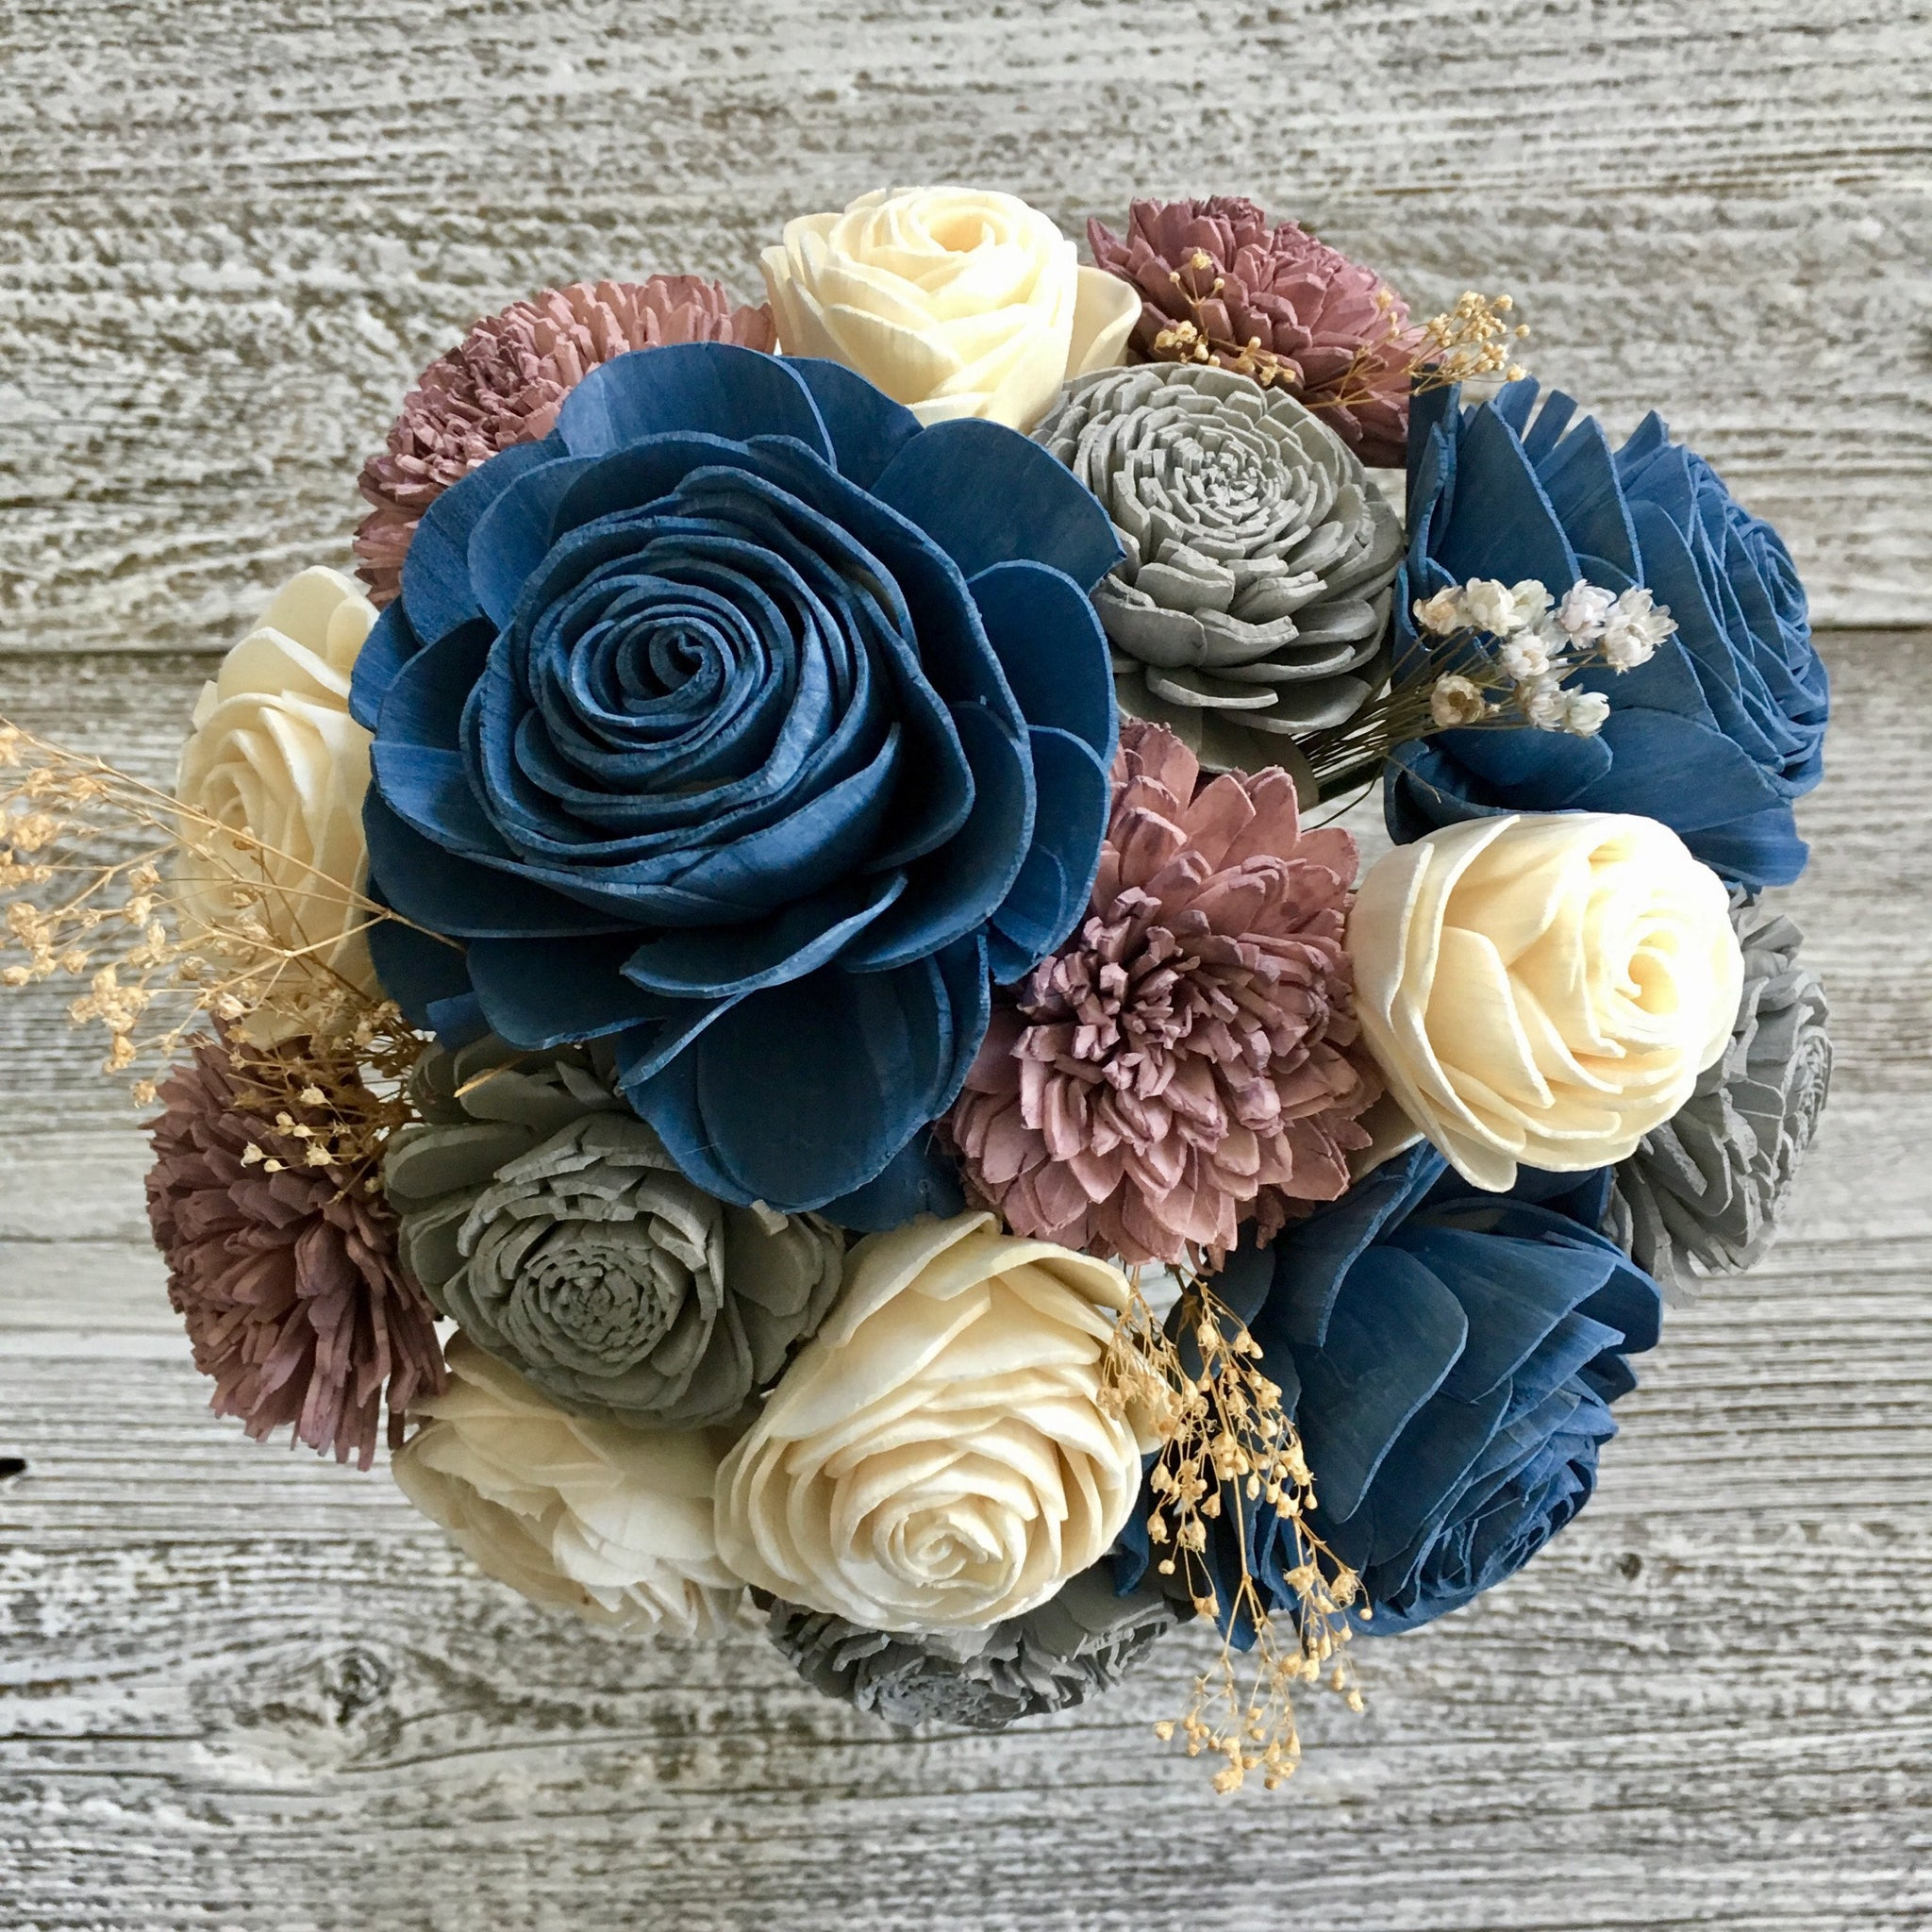 Wood Flower Bouquet - Fields of Mauve - Eco Friendly Sola Flowers - Wooden - Steel Blue, Mauve and Light Grey - Gift - Wedding - CB1010